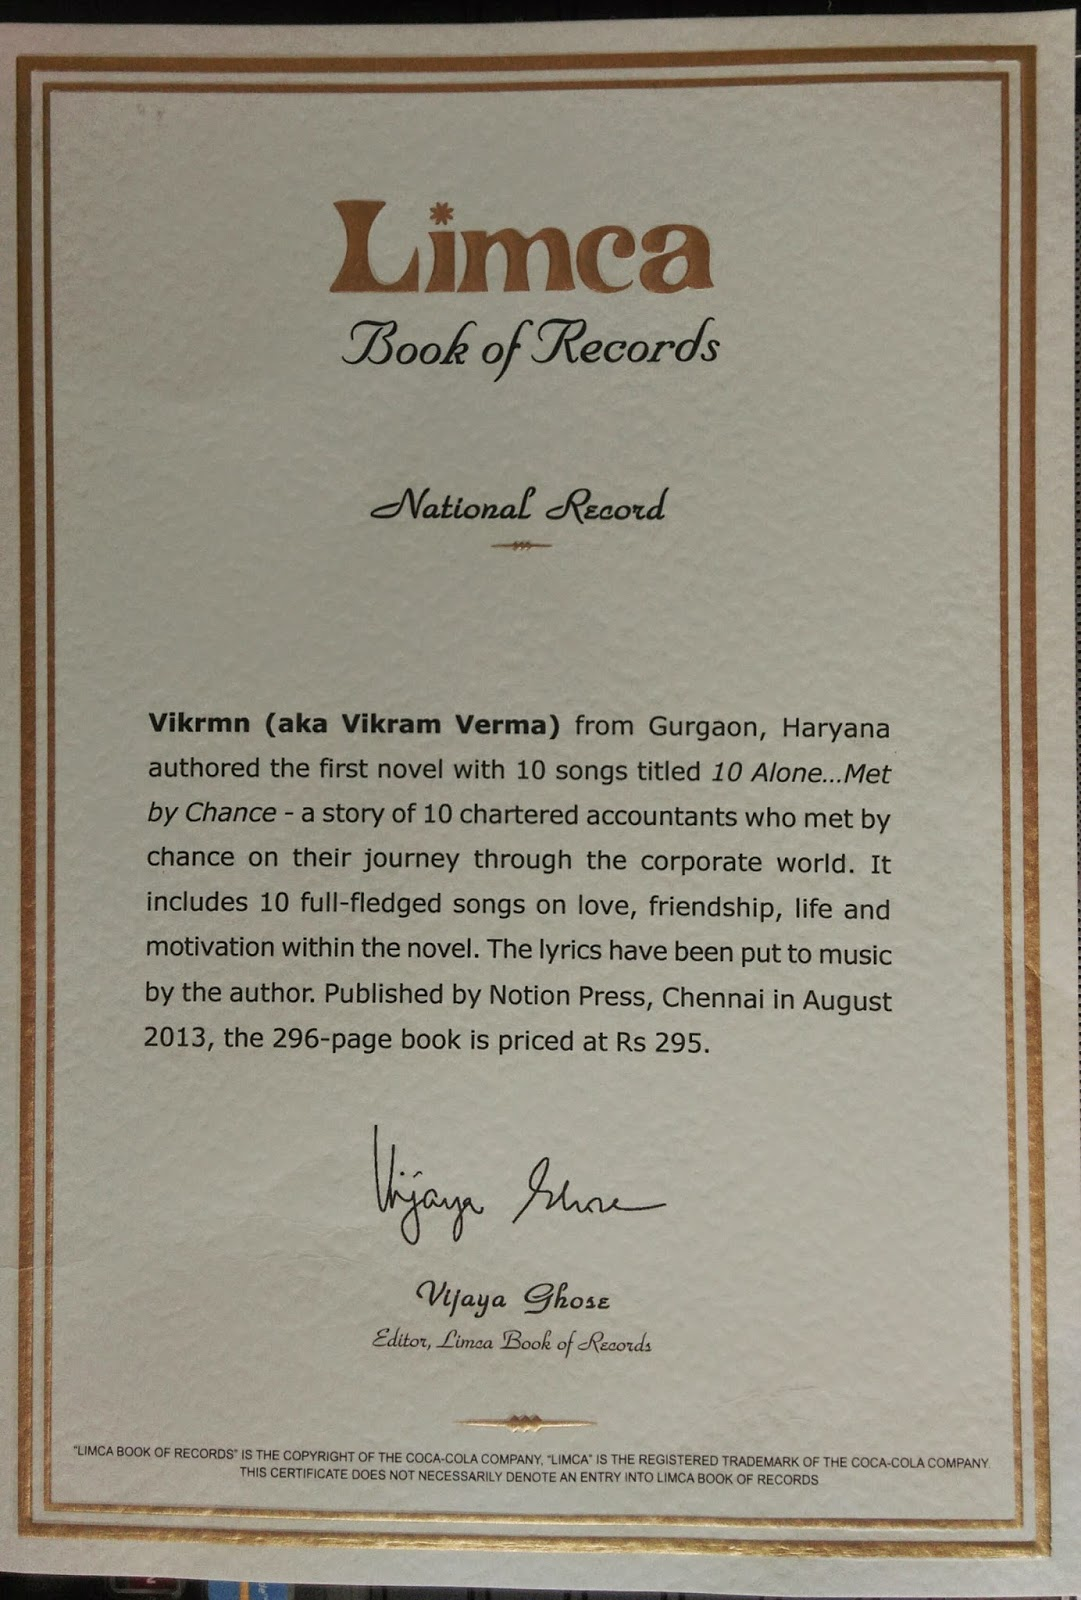 10Alone-in-Limca-book-of-records-2015-in-Literature-catificate-First-Novel-LBR-by-Vikrmn-CA-Vikram-Verma-Author